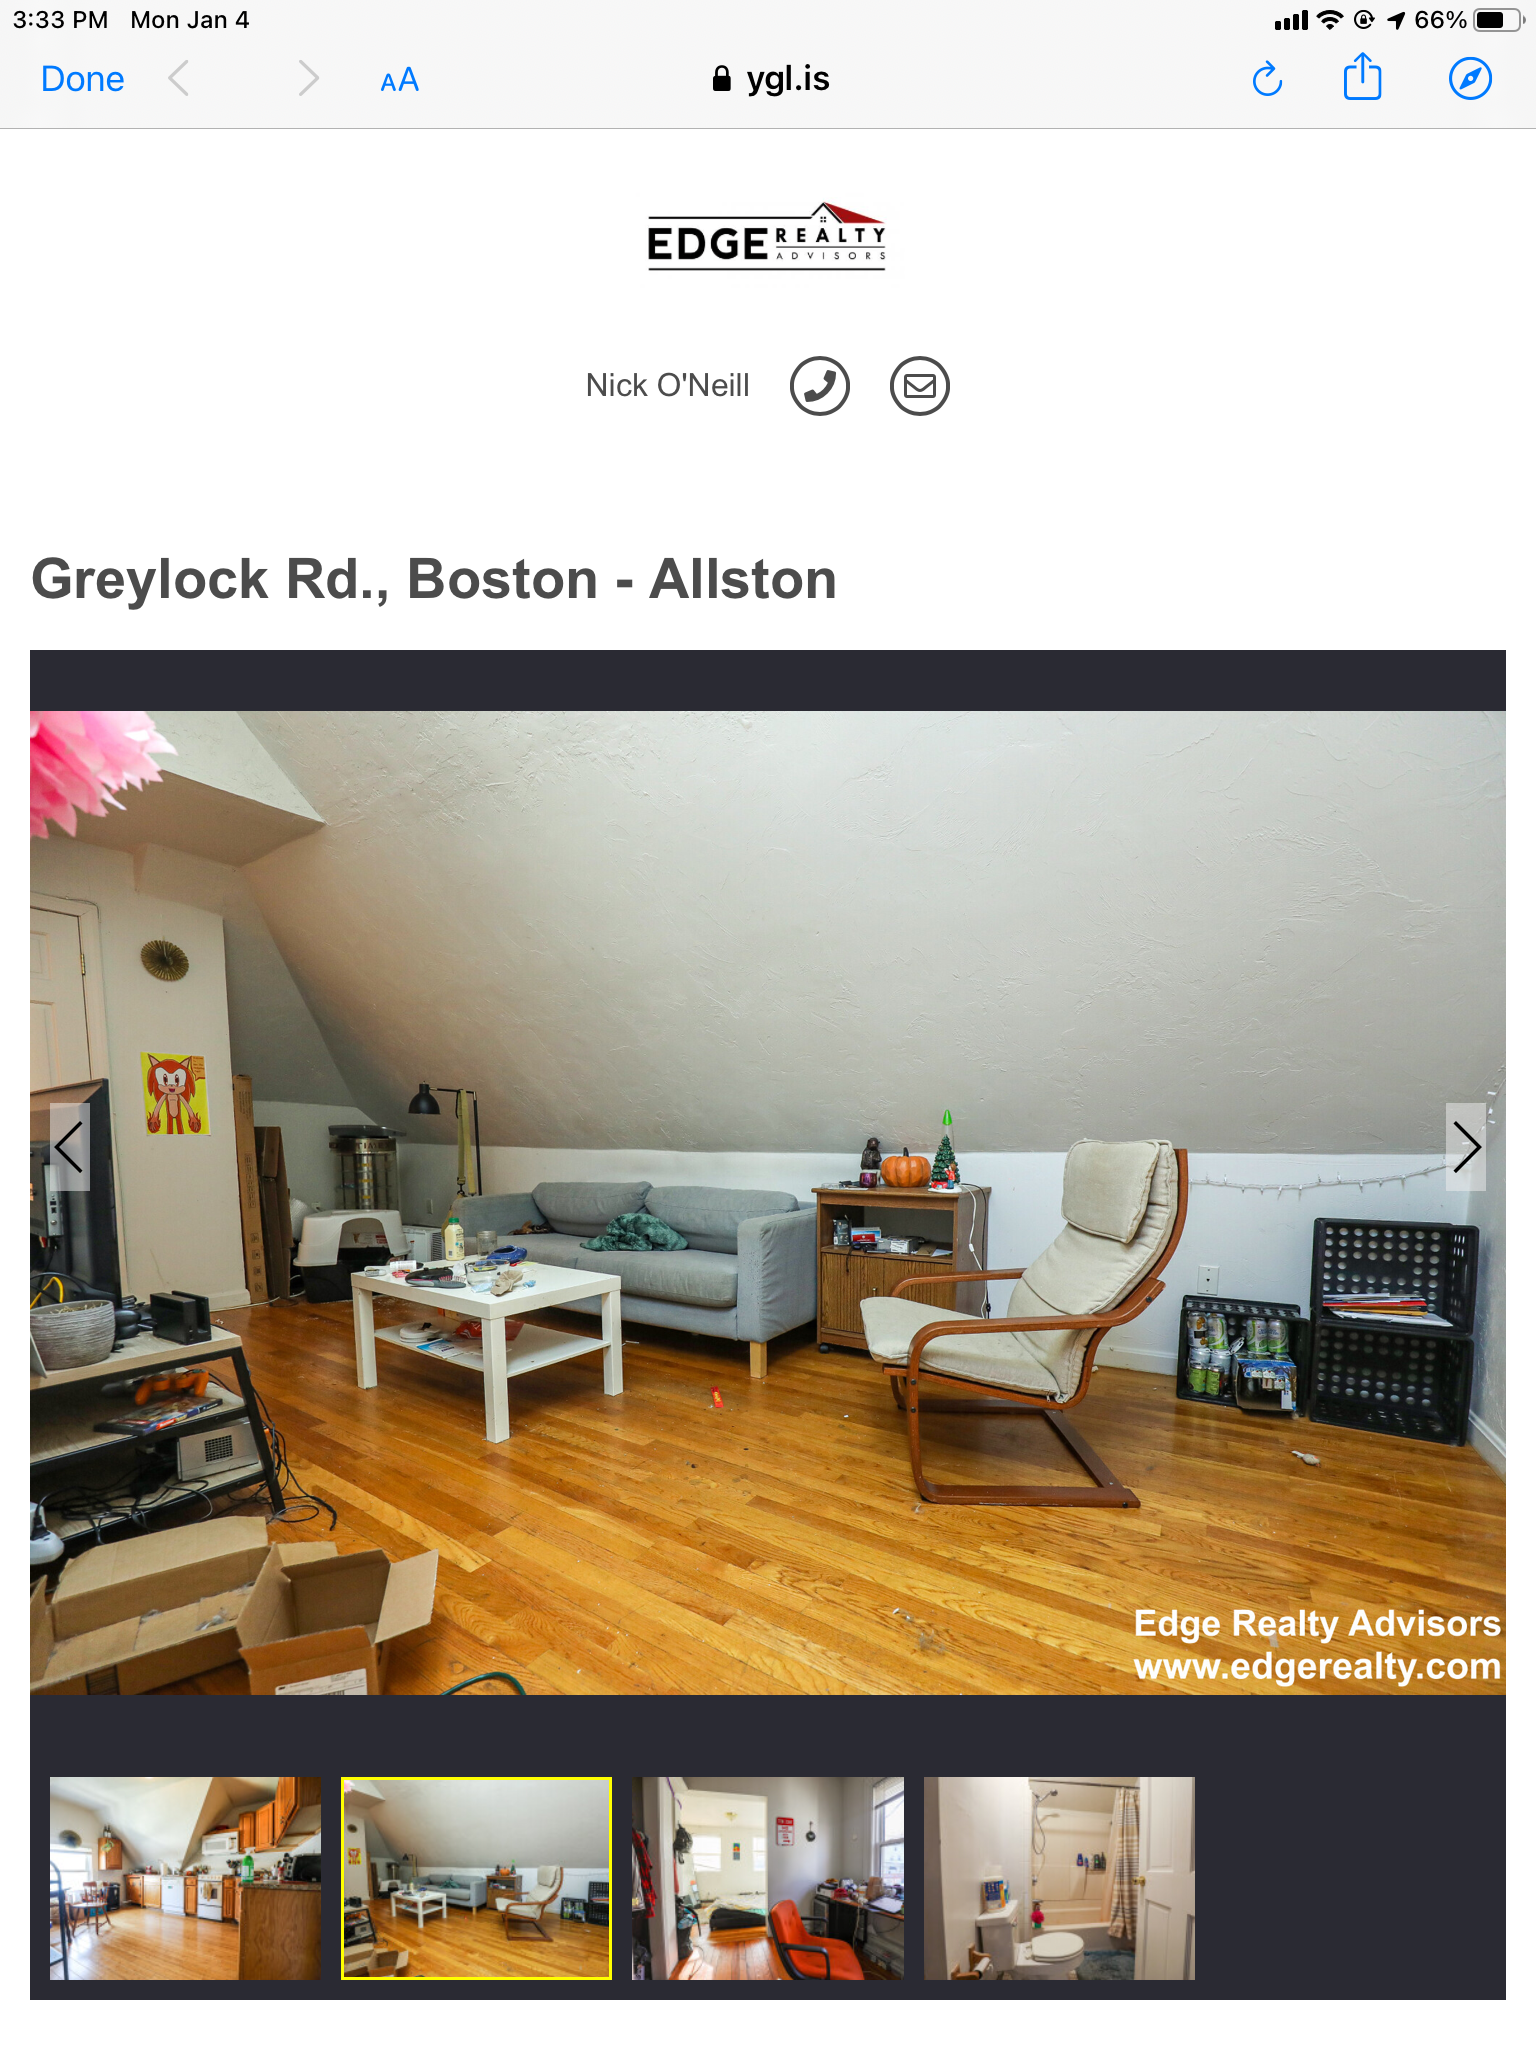 4 Beds, 1 Bath apartment in Boston, Allston for $3,600